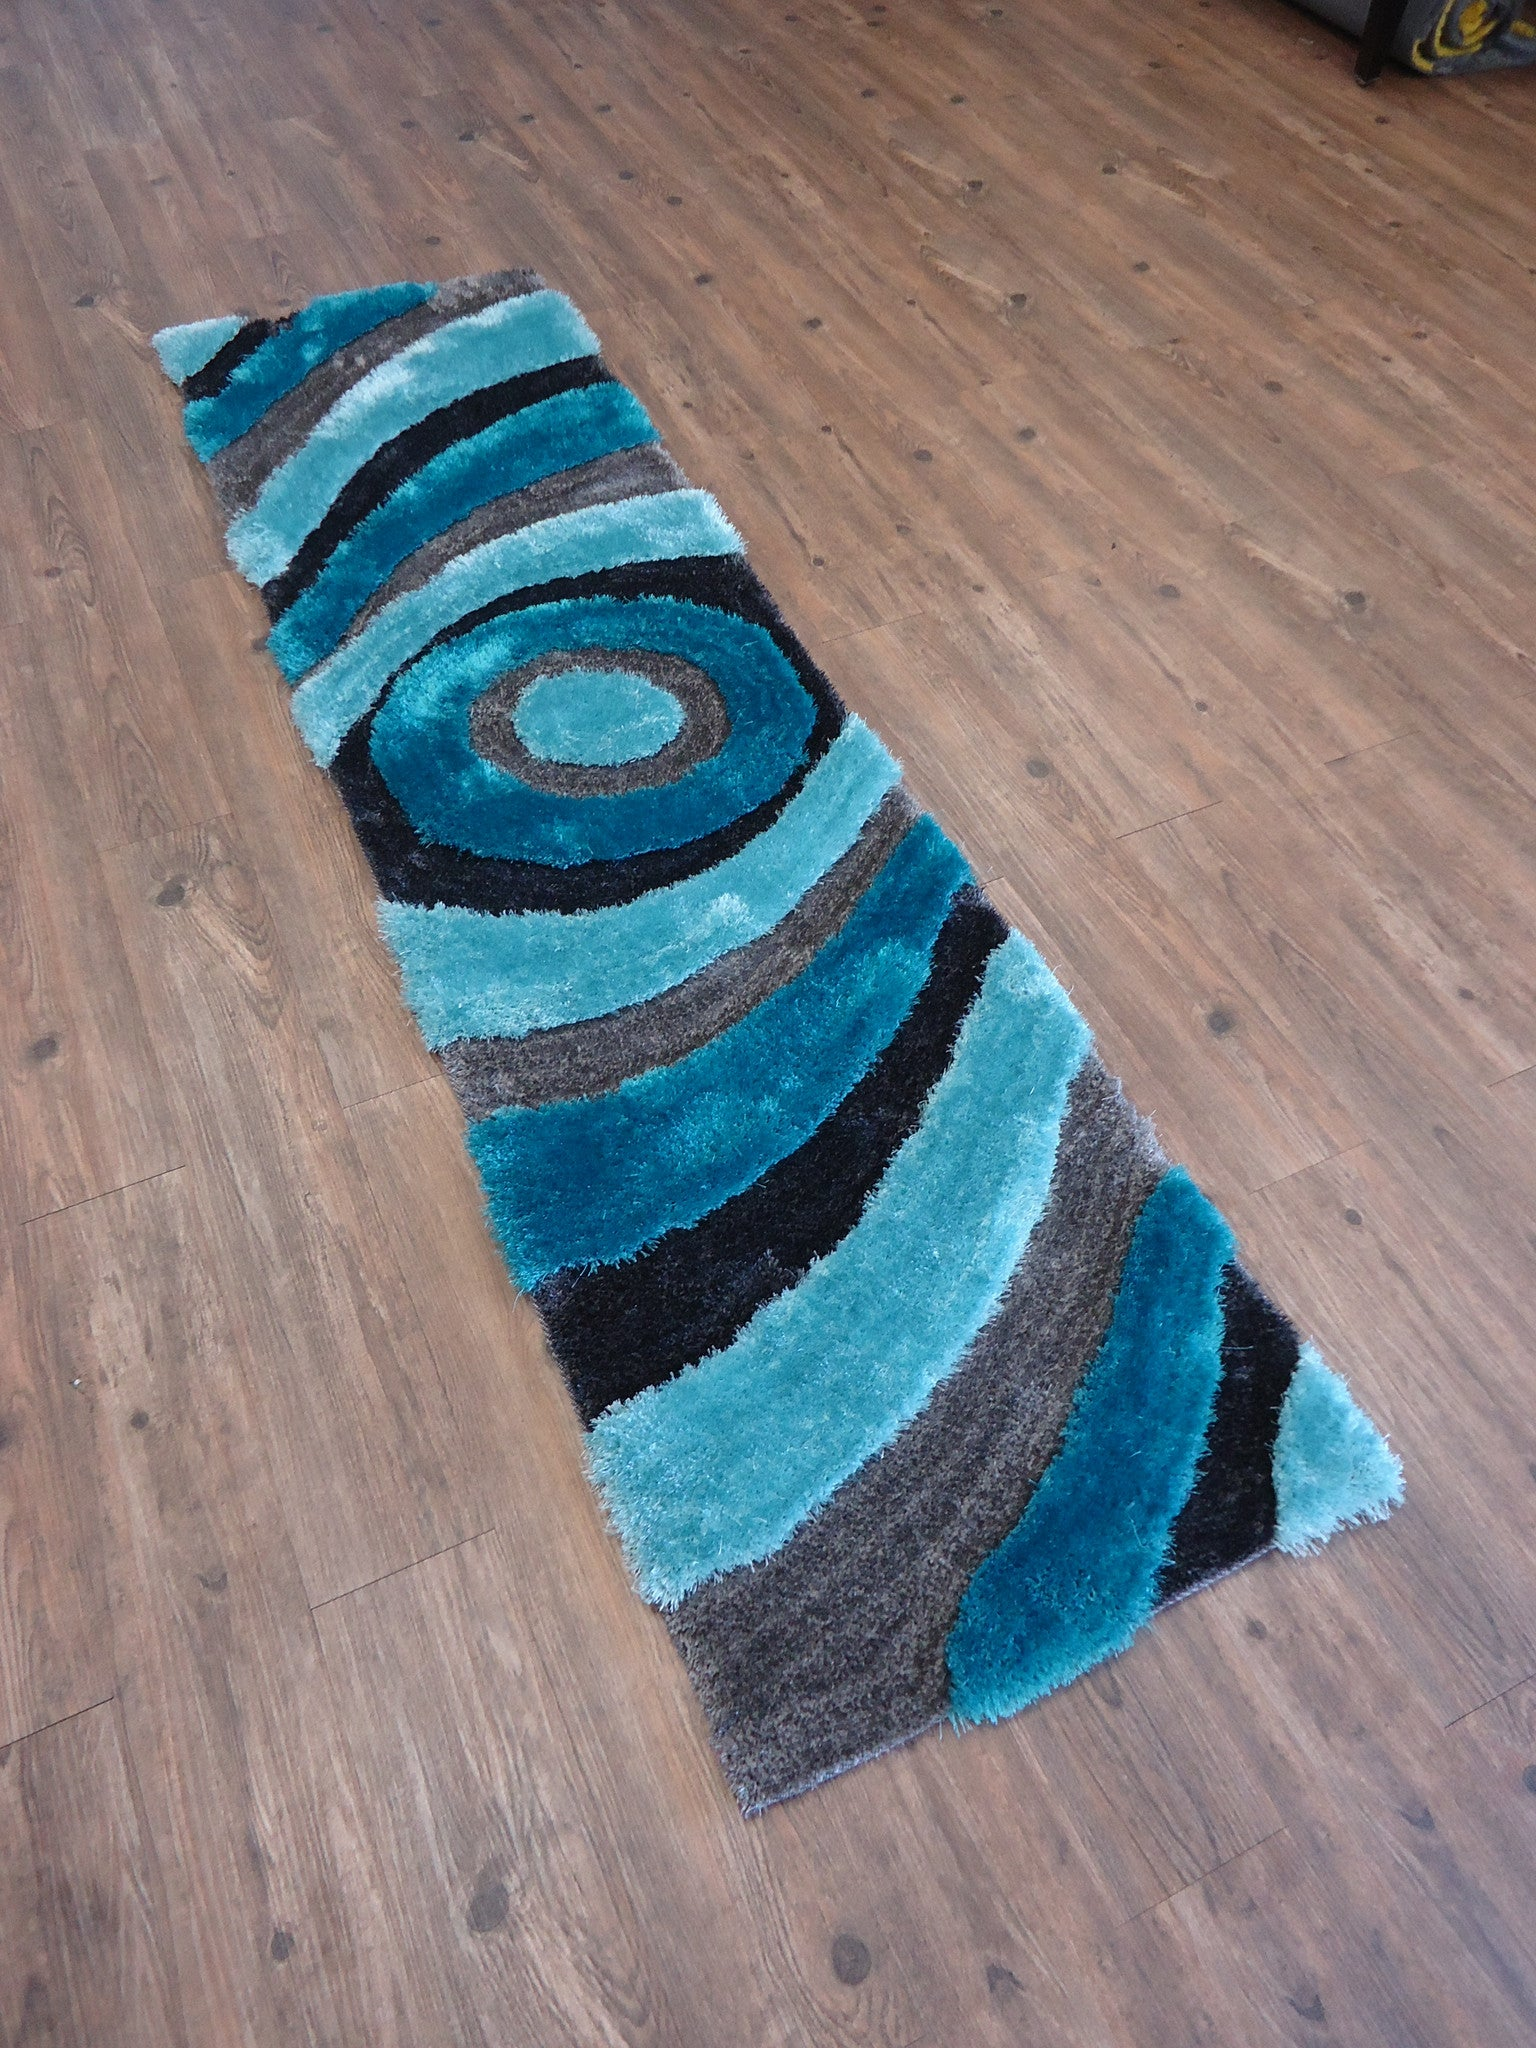 ... Handmade Gray With Blue Dimensional Shag Area Rug With Hand Carved  Design , Area Rug ...